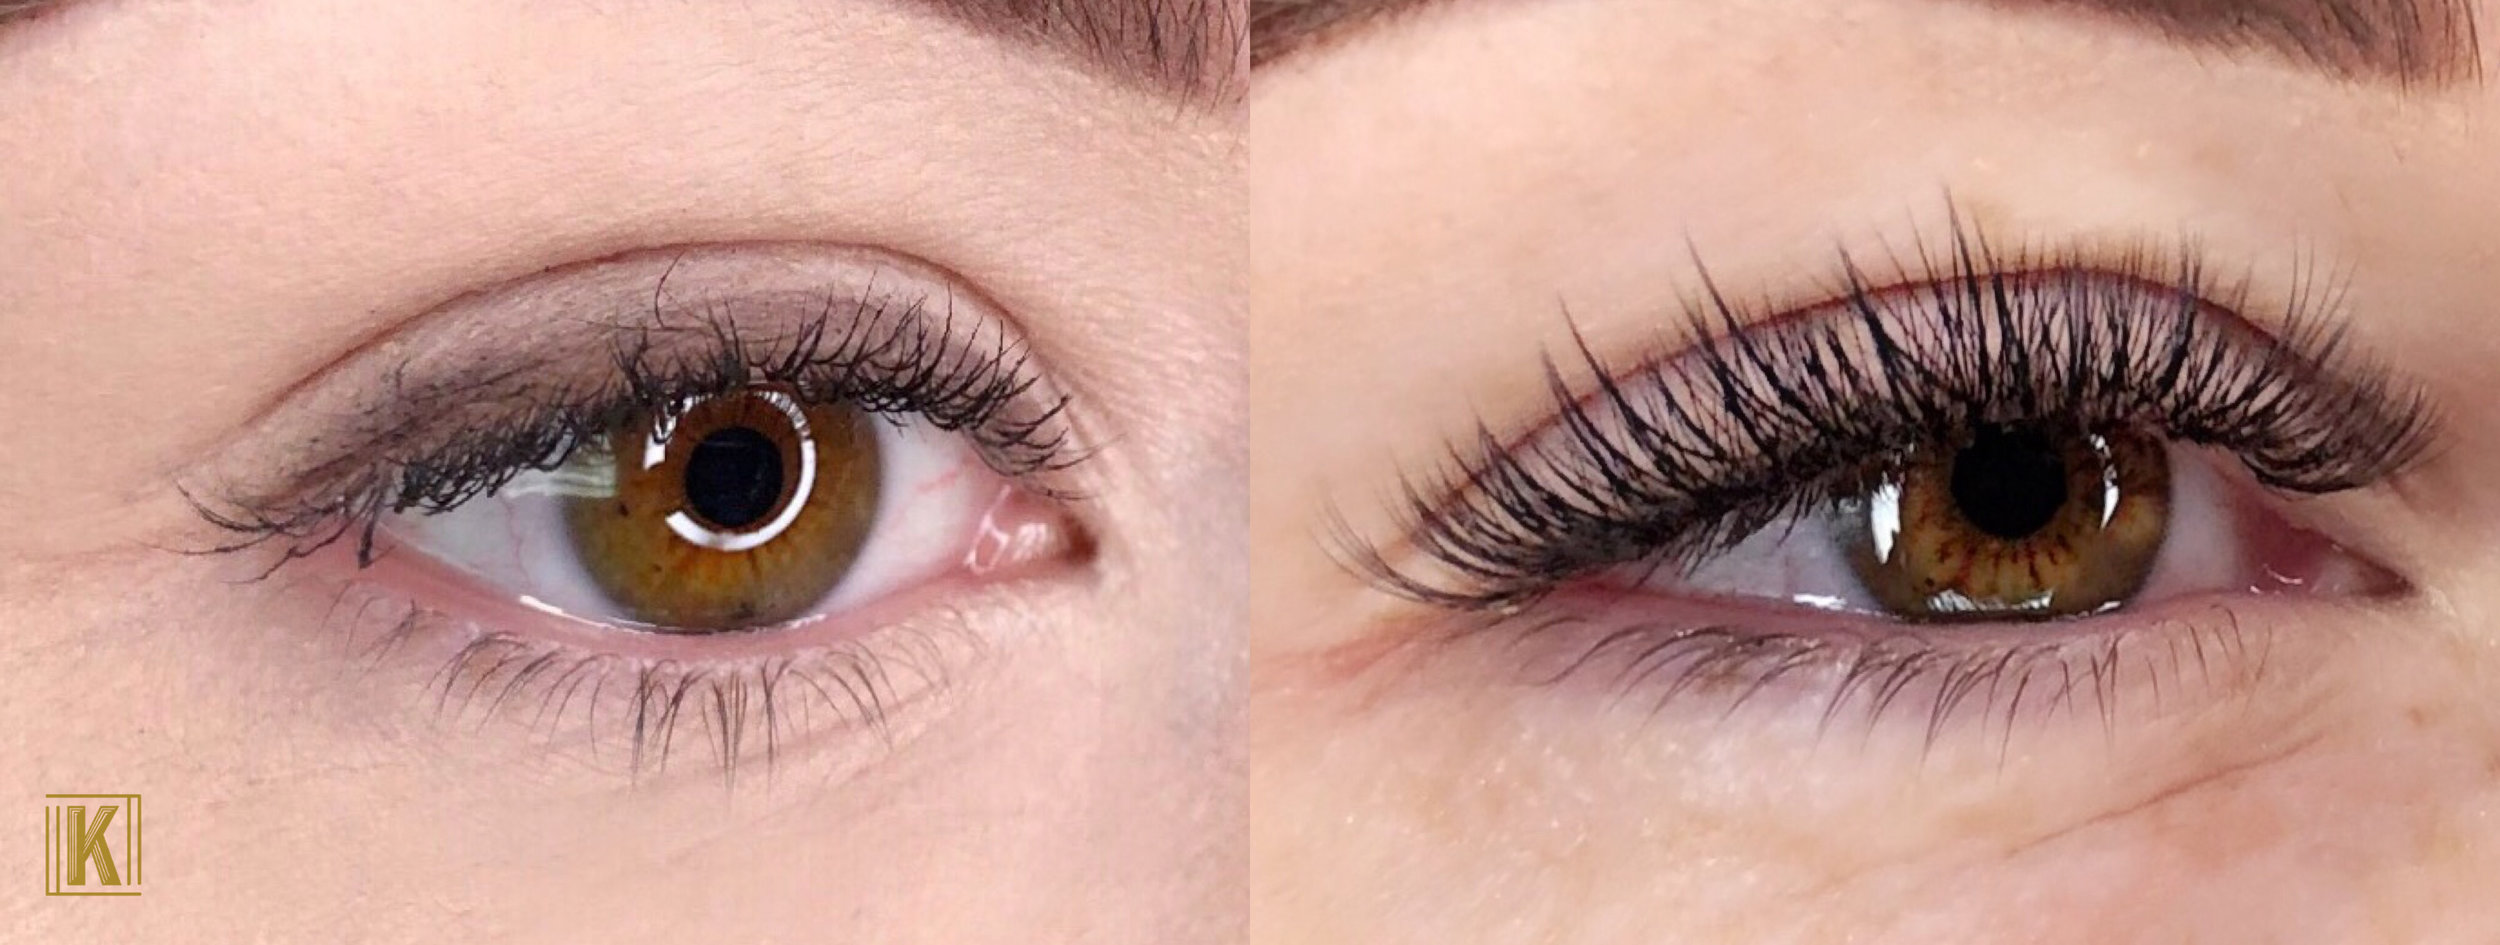 before / after - Hybrid Eyelash Extensions